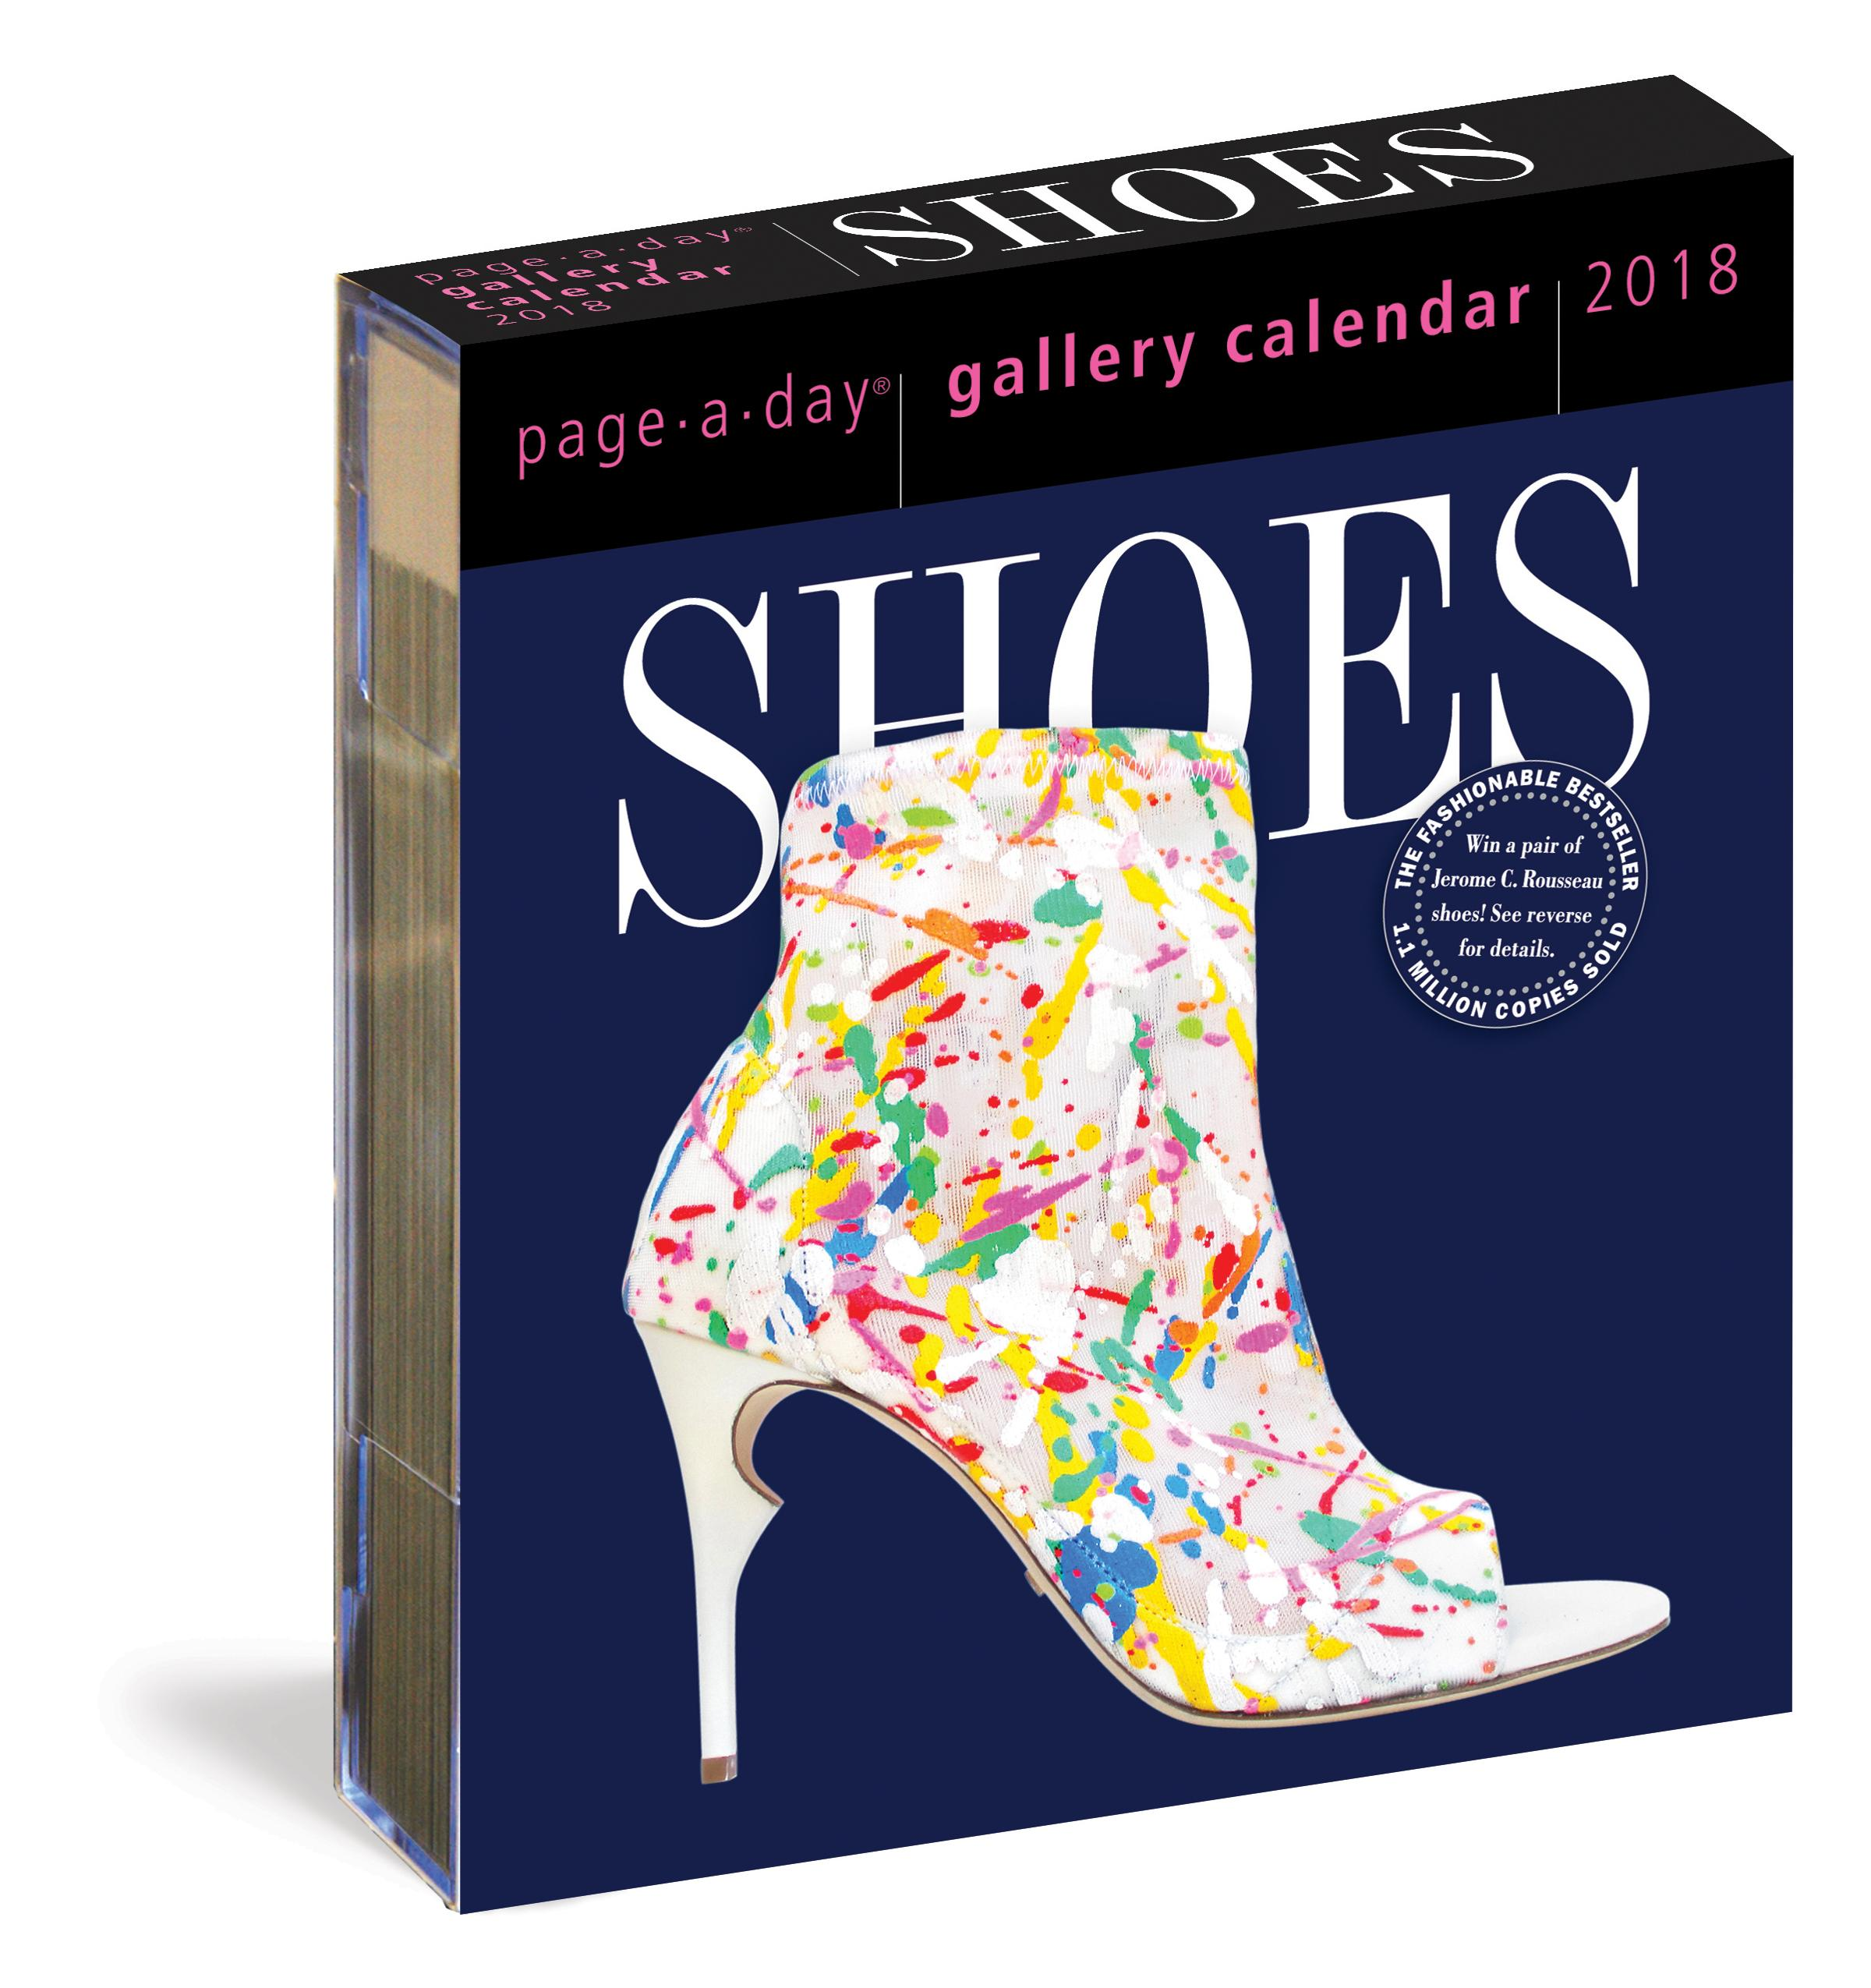 Calendar Book 2018 : Shoes page a day gallery calendar workman publishing